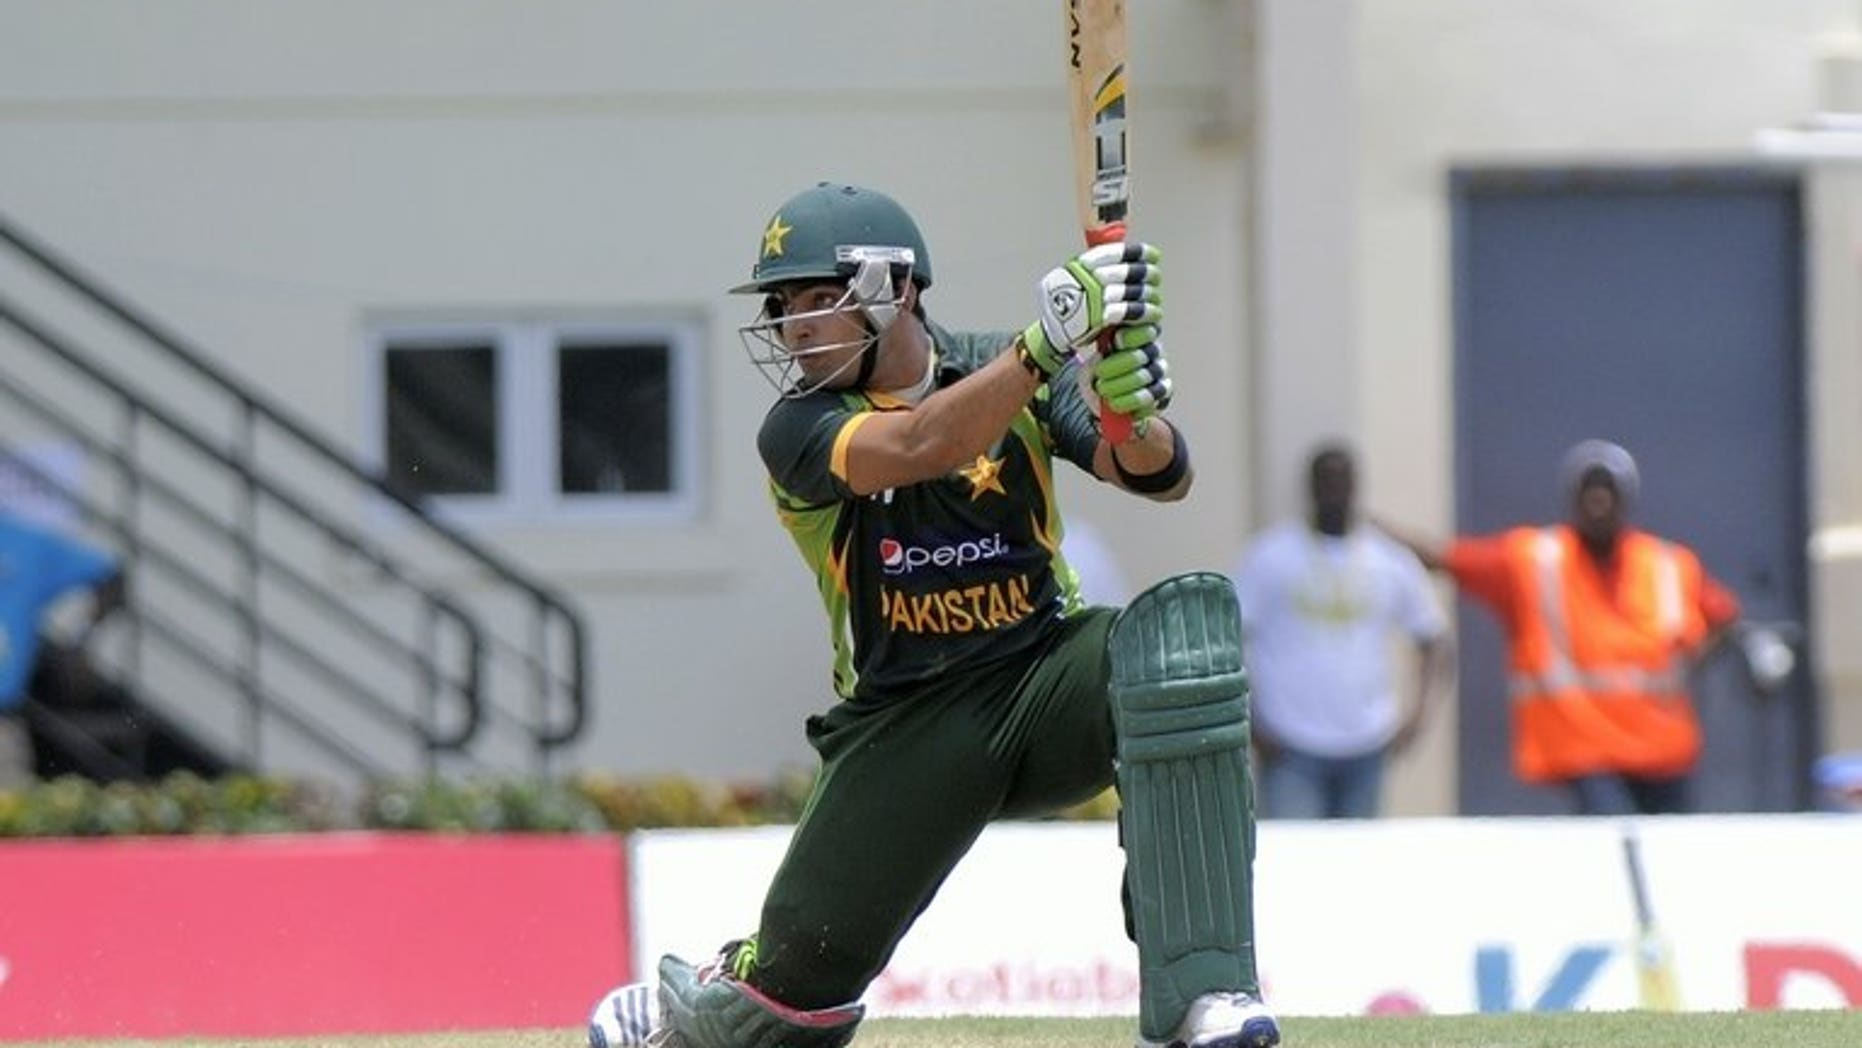 Pakistan batsman Umar Akmal in action at Beausejour Cricket Ground in Gros Islet on July 19, 2013. Pakistan's talented young batsman Akmal will see a neurologist for further testing after suffering a suspected seizure which forced his withdrawal from the Zimbabwe tour, an official said Wednesday.